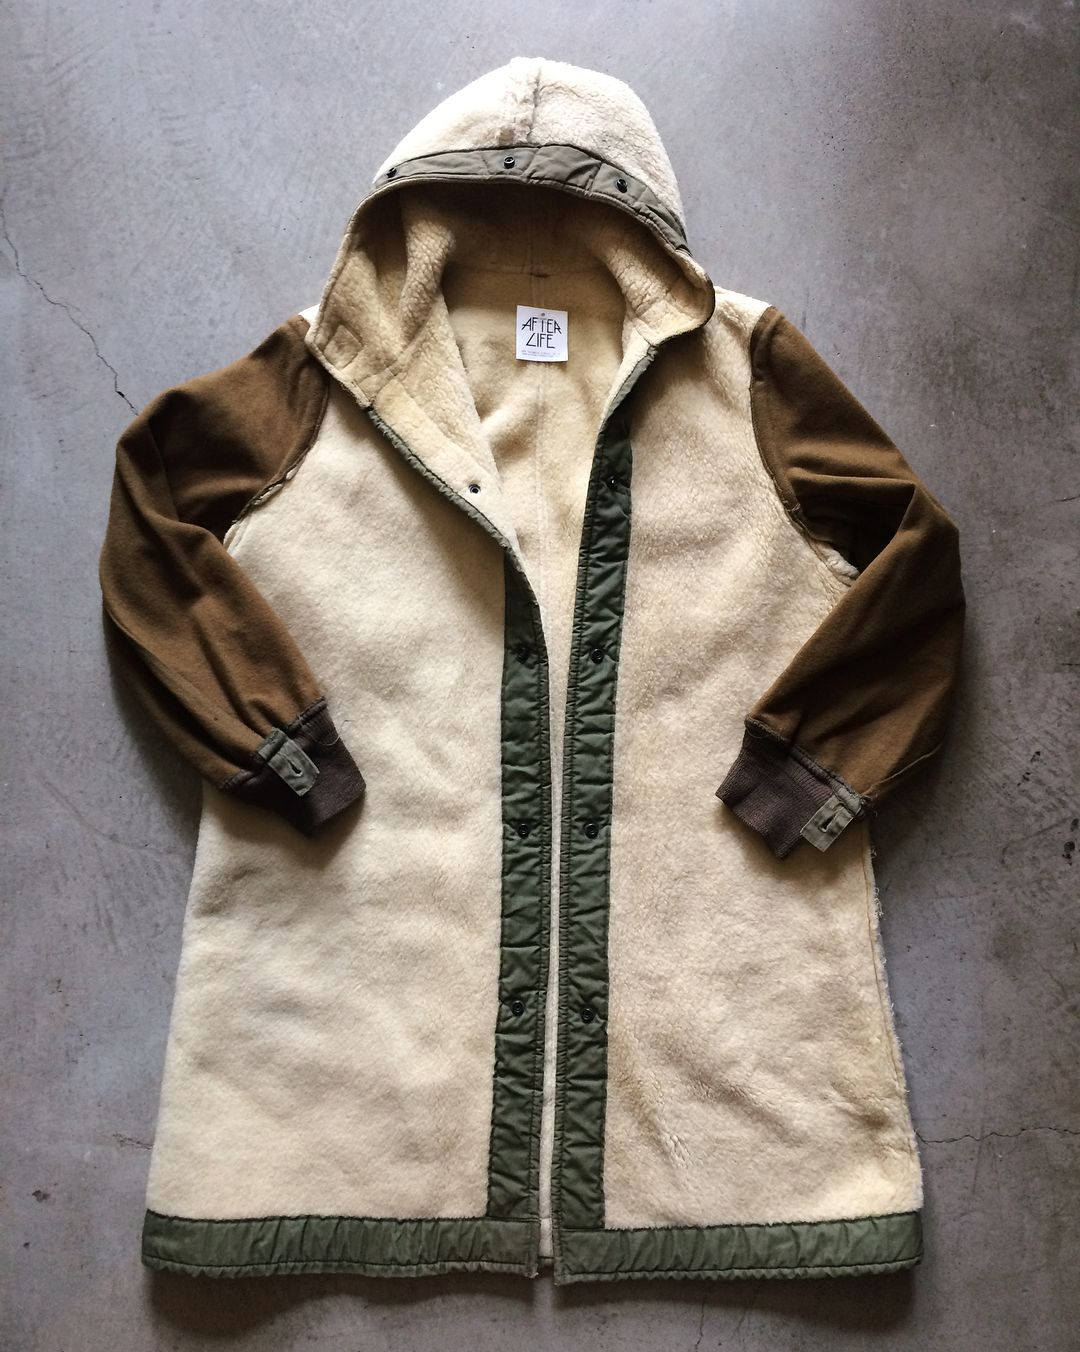 Vintage military shearling liner jacket, tagged size S